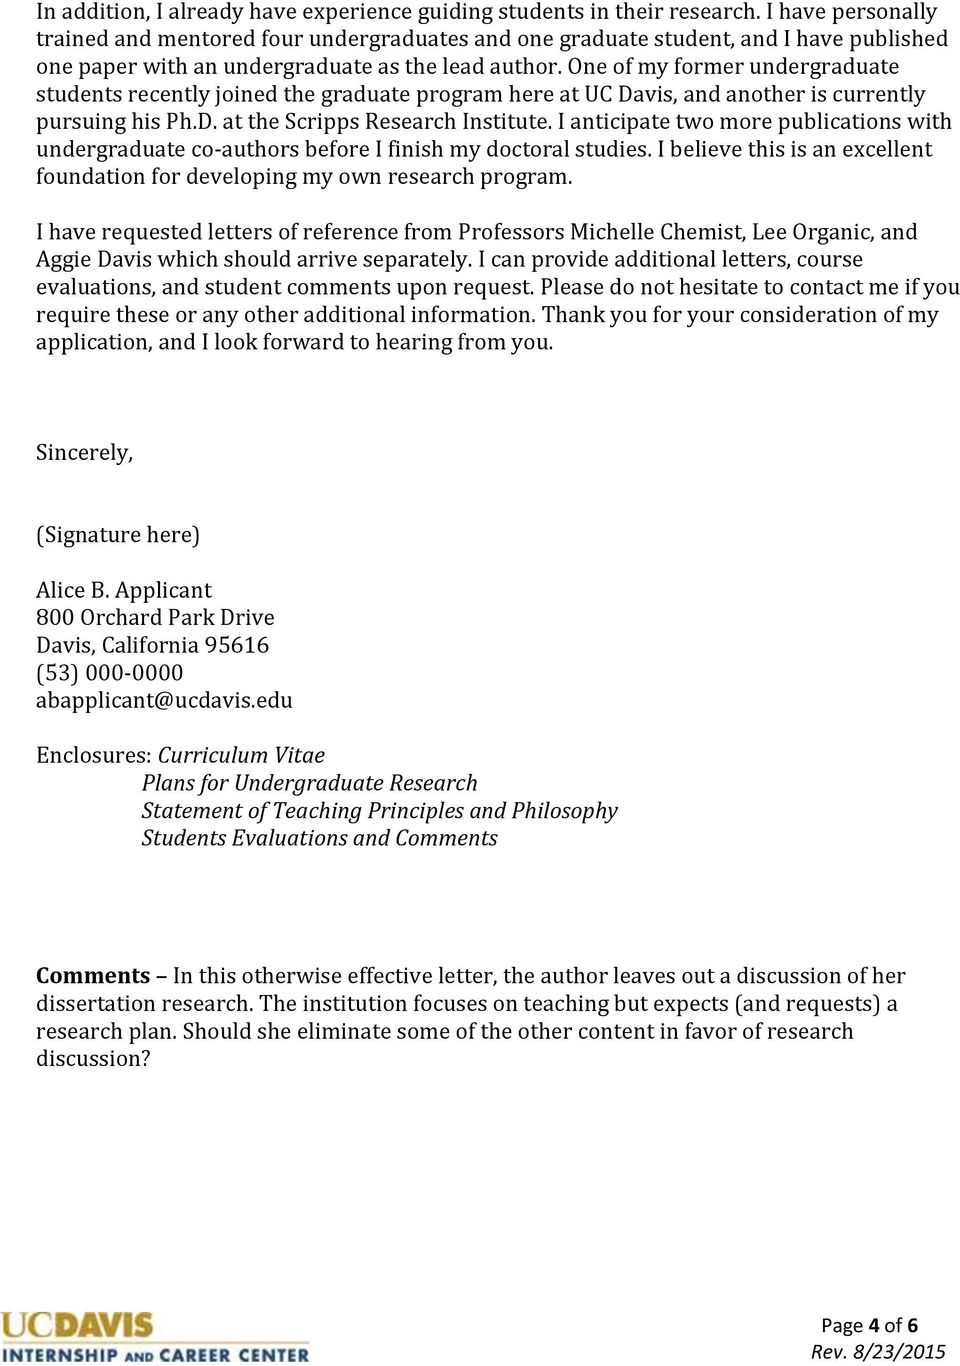 cover letter postdoc biology